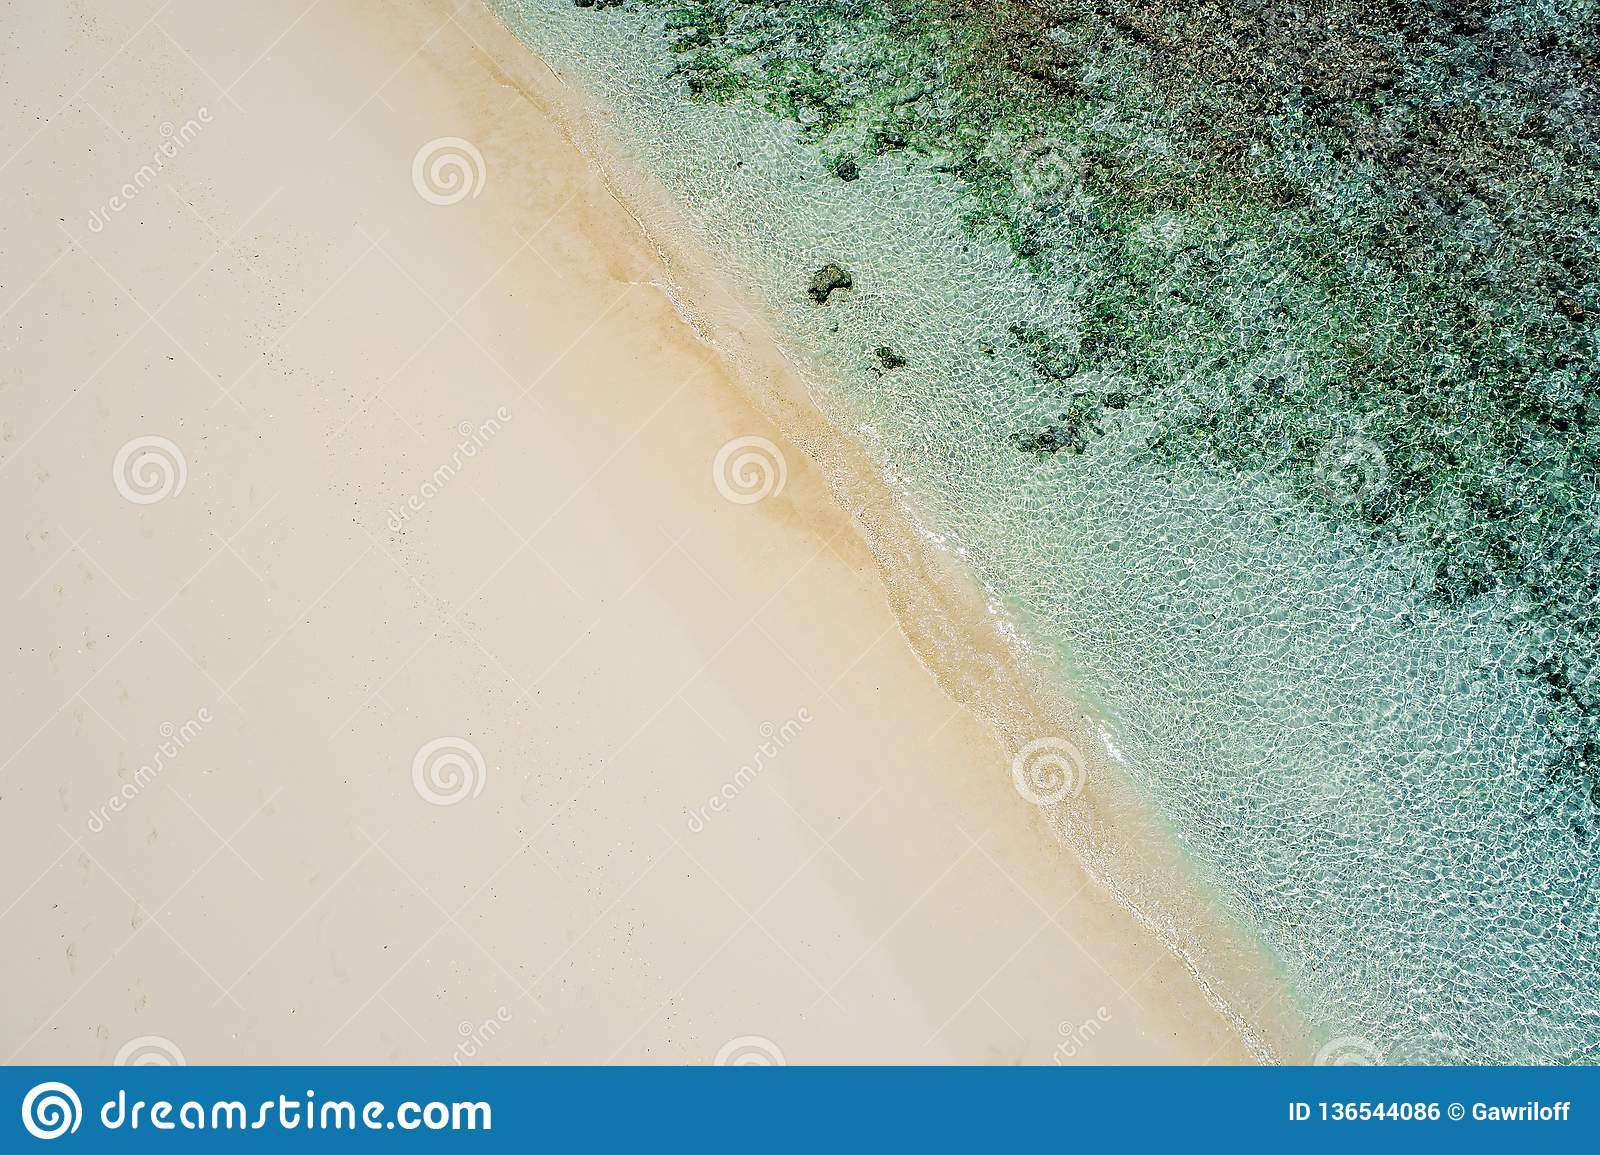 Beautiful tropical white empty beach and sea waves seen from above. Seychelles beach aerial view